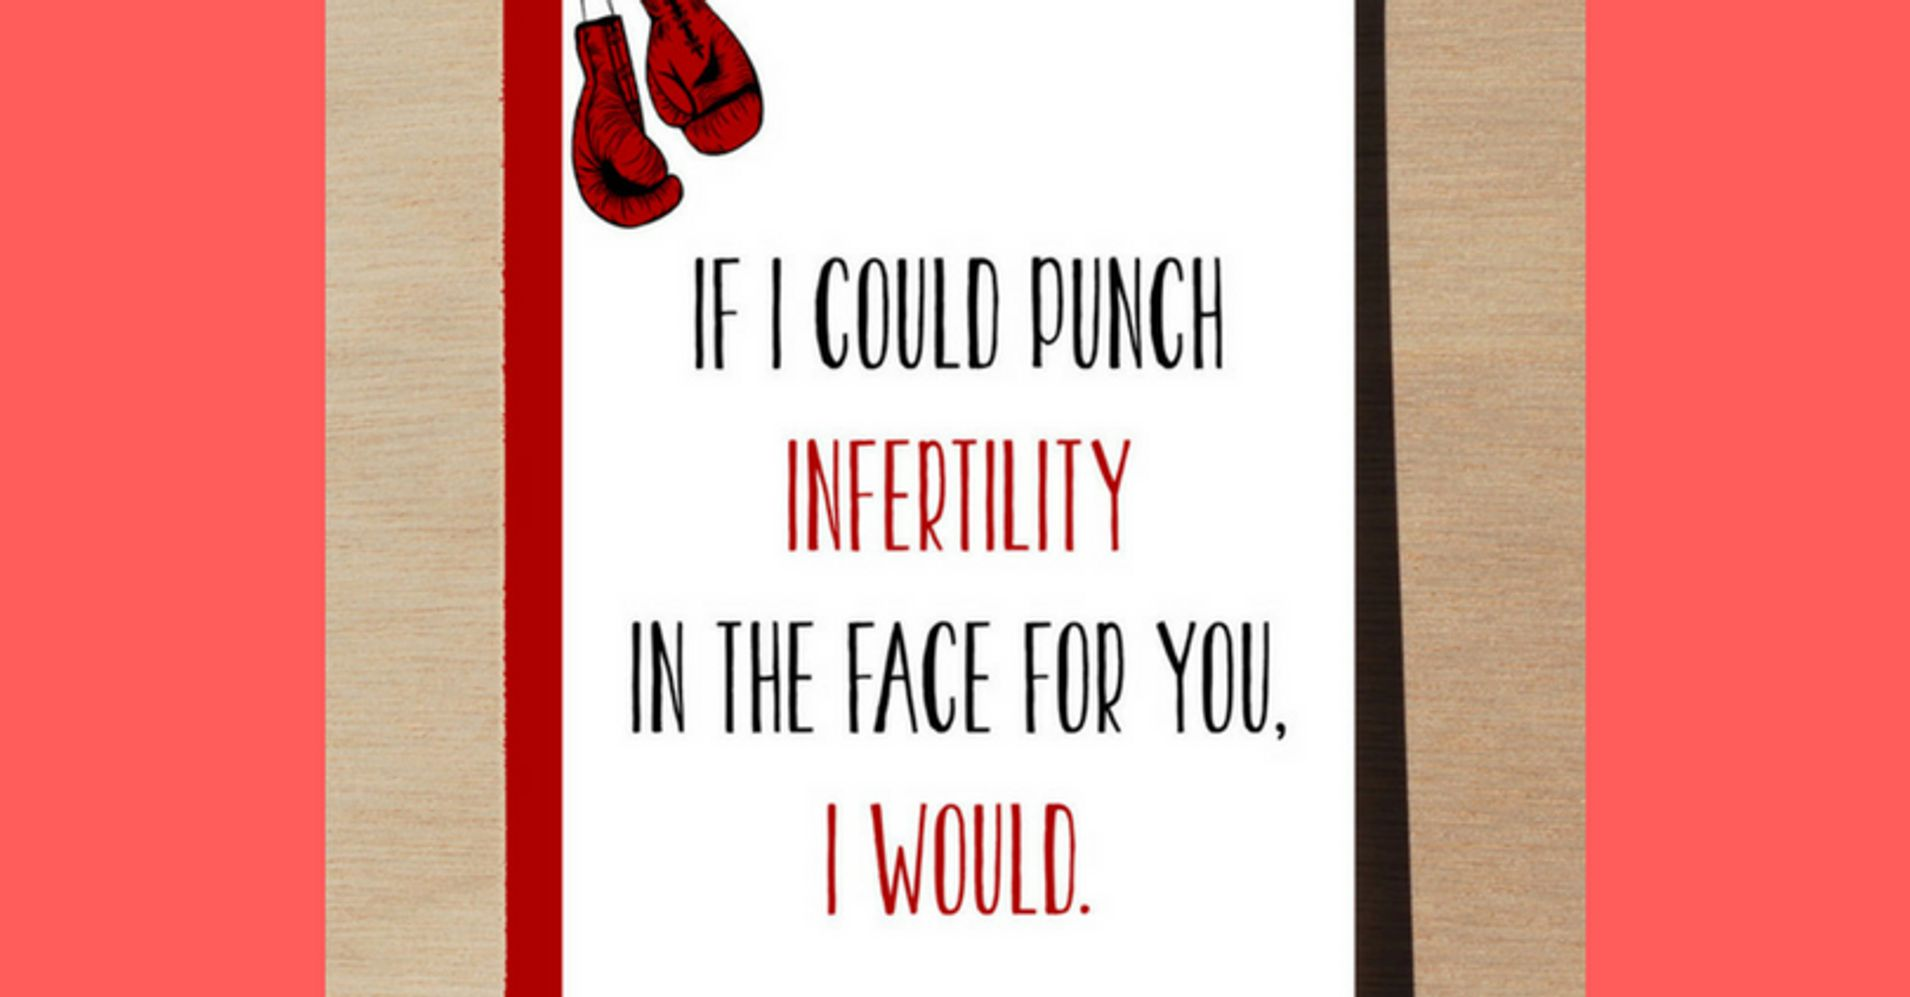 26 Cards To Give Someone Struggling With Fertility Issues Huffpost